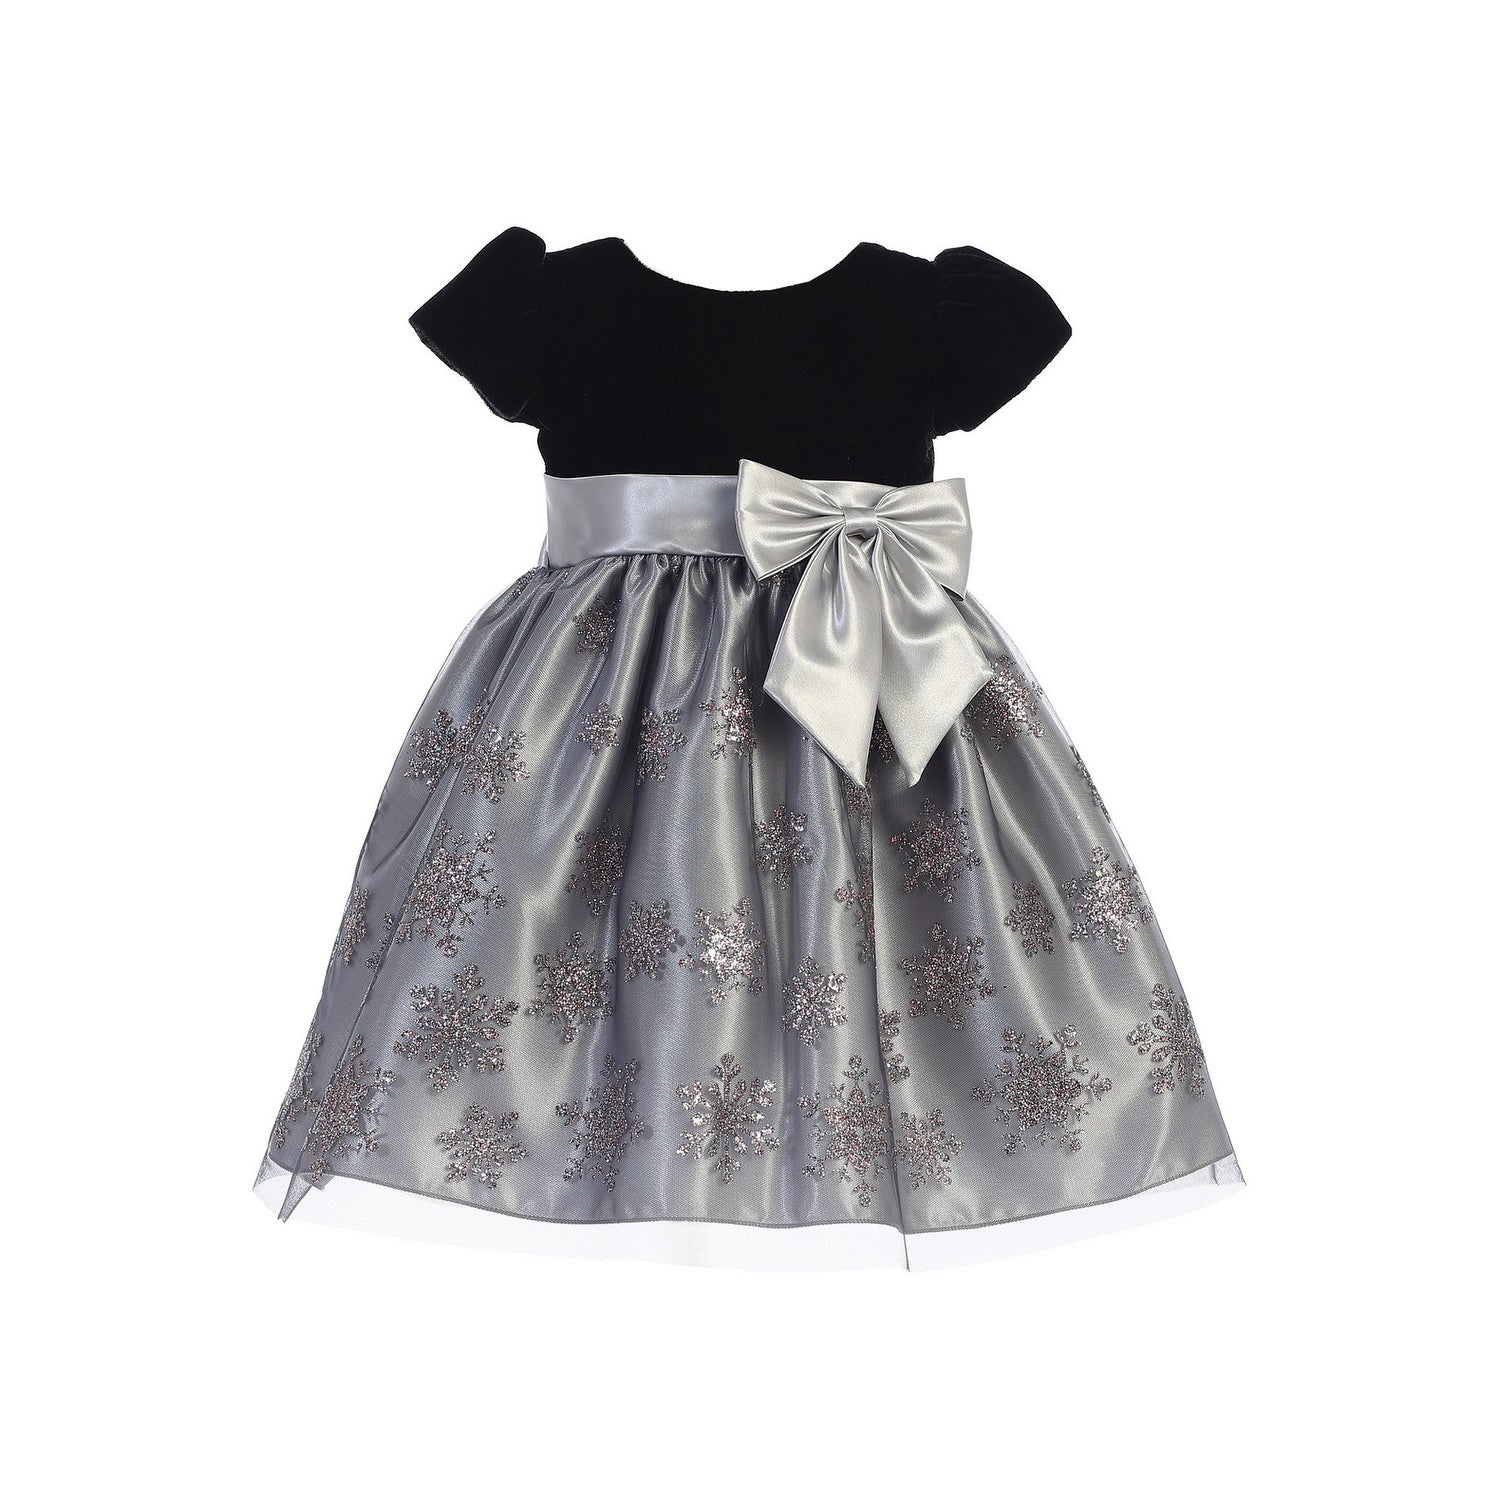 33c35994fa32 Buy Girls' Dresses Online at Overstock | Our Best Girls' Clothing Deals